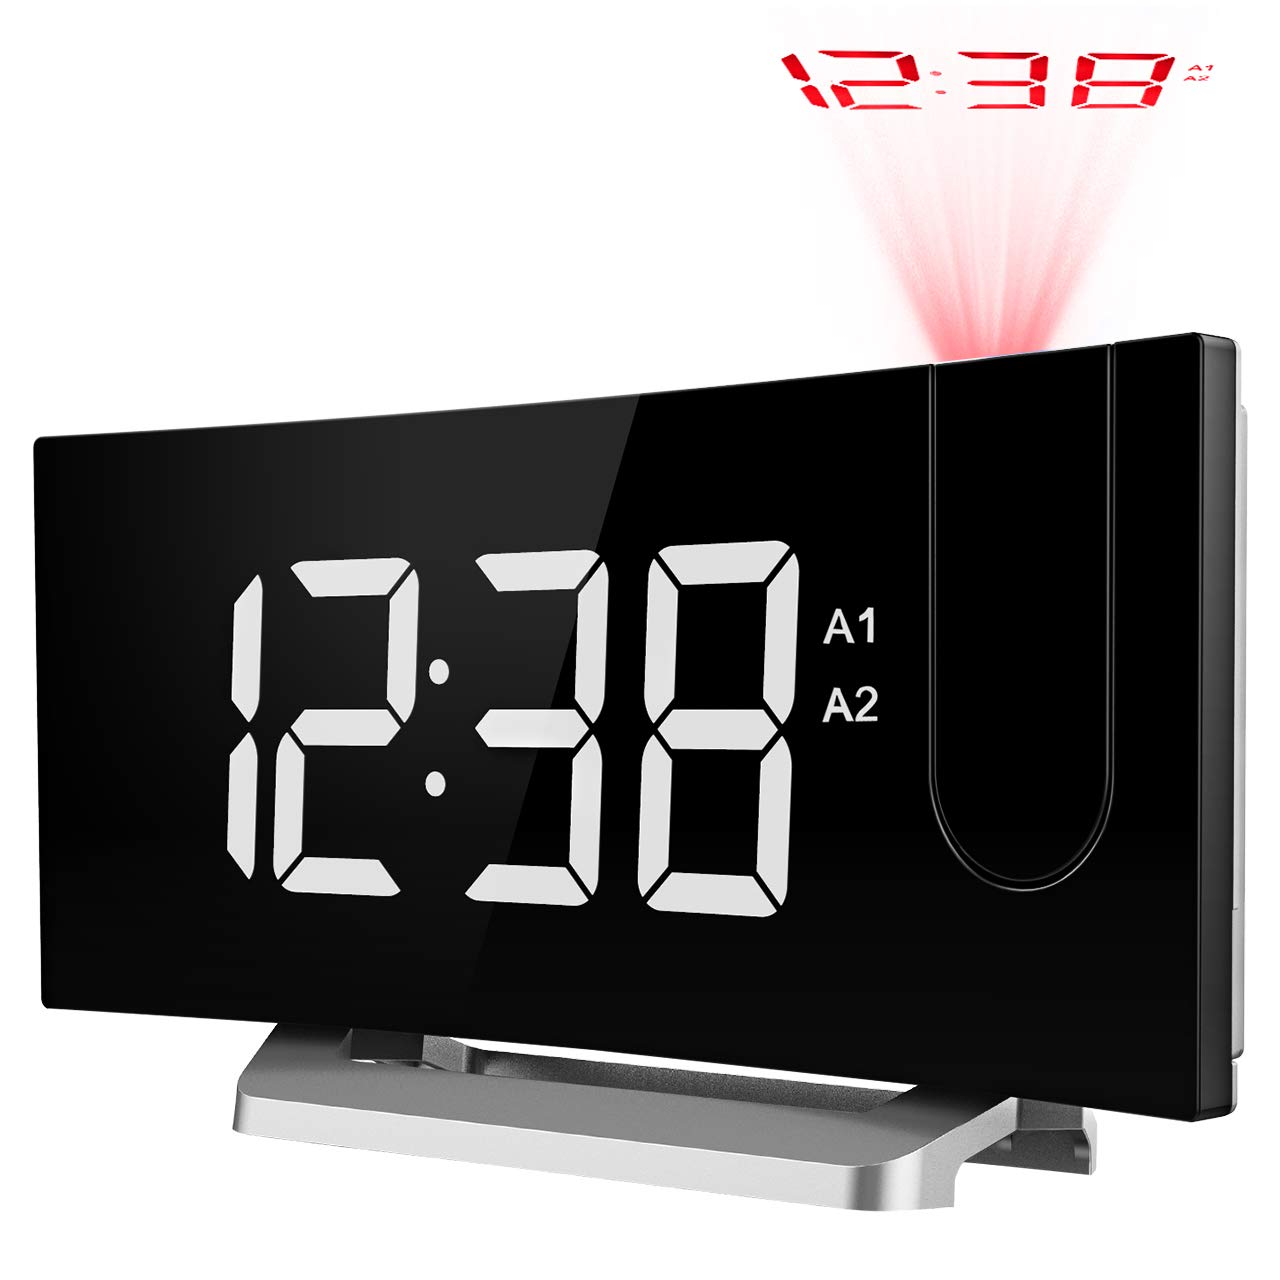 TOPELEK Digital Projection Clock, FM Radio Alarm Clock with USB Charging Port, Dual Alarms, Snooze Function, [Curved-Screen] 5-inch Large LED Display with Dimmer, 12/24 Hours, Backup Battery-White